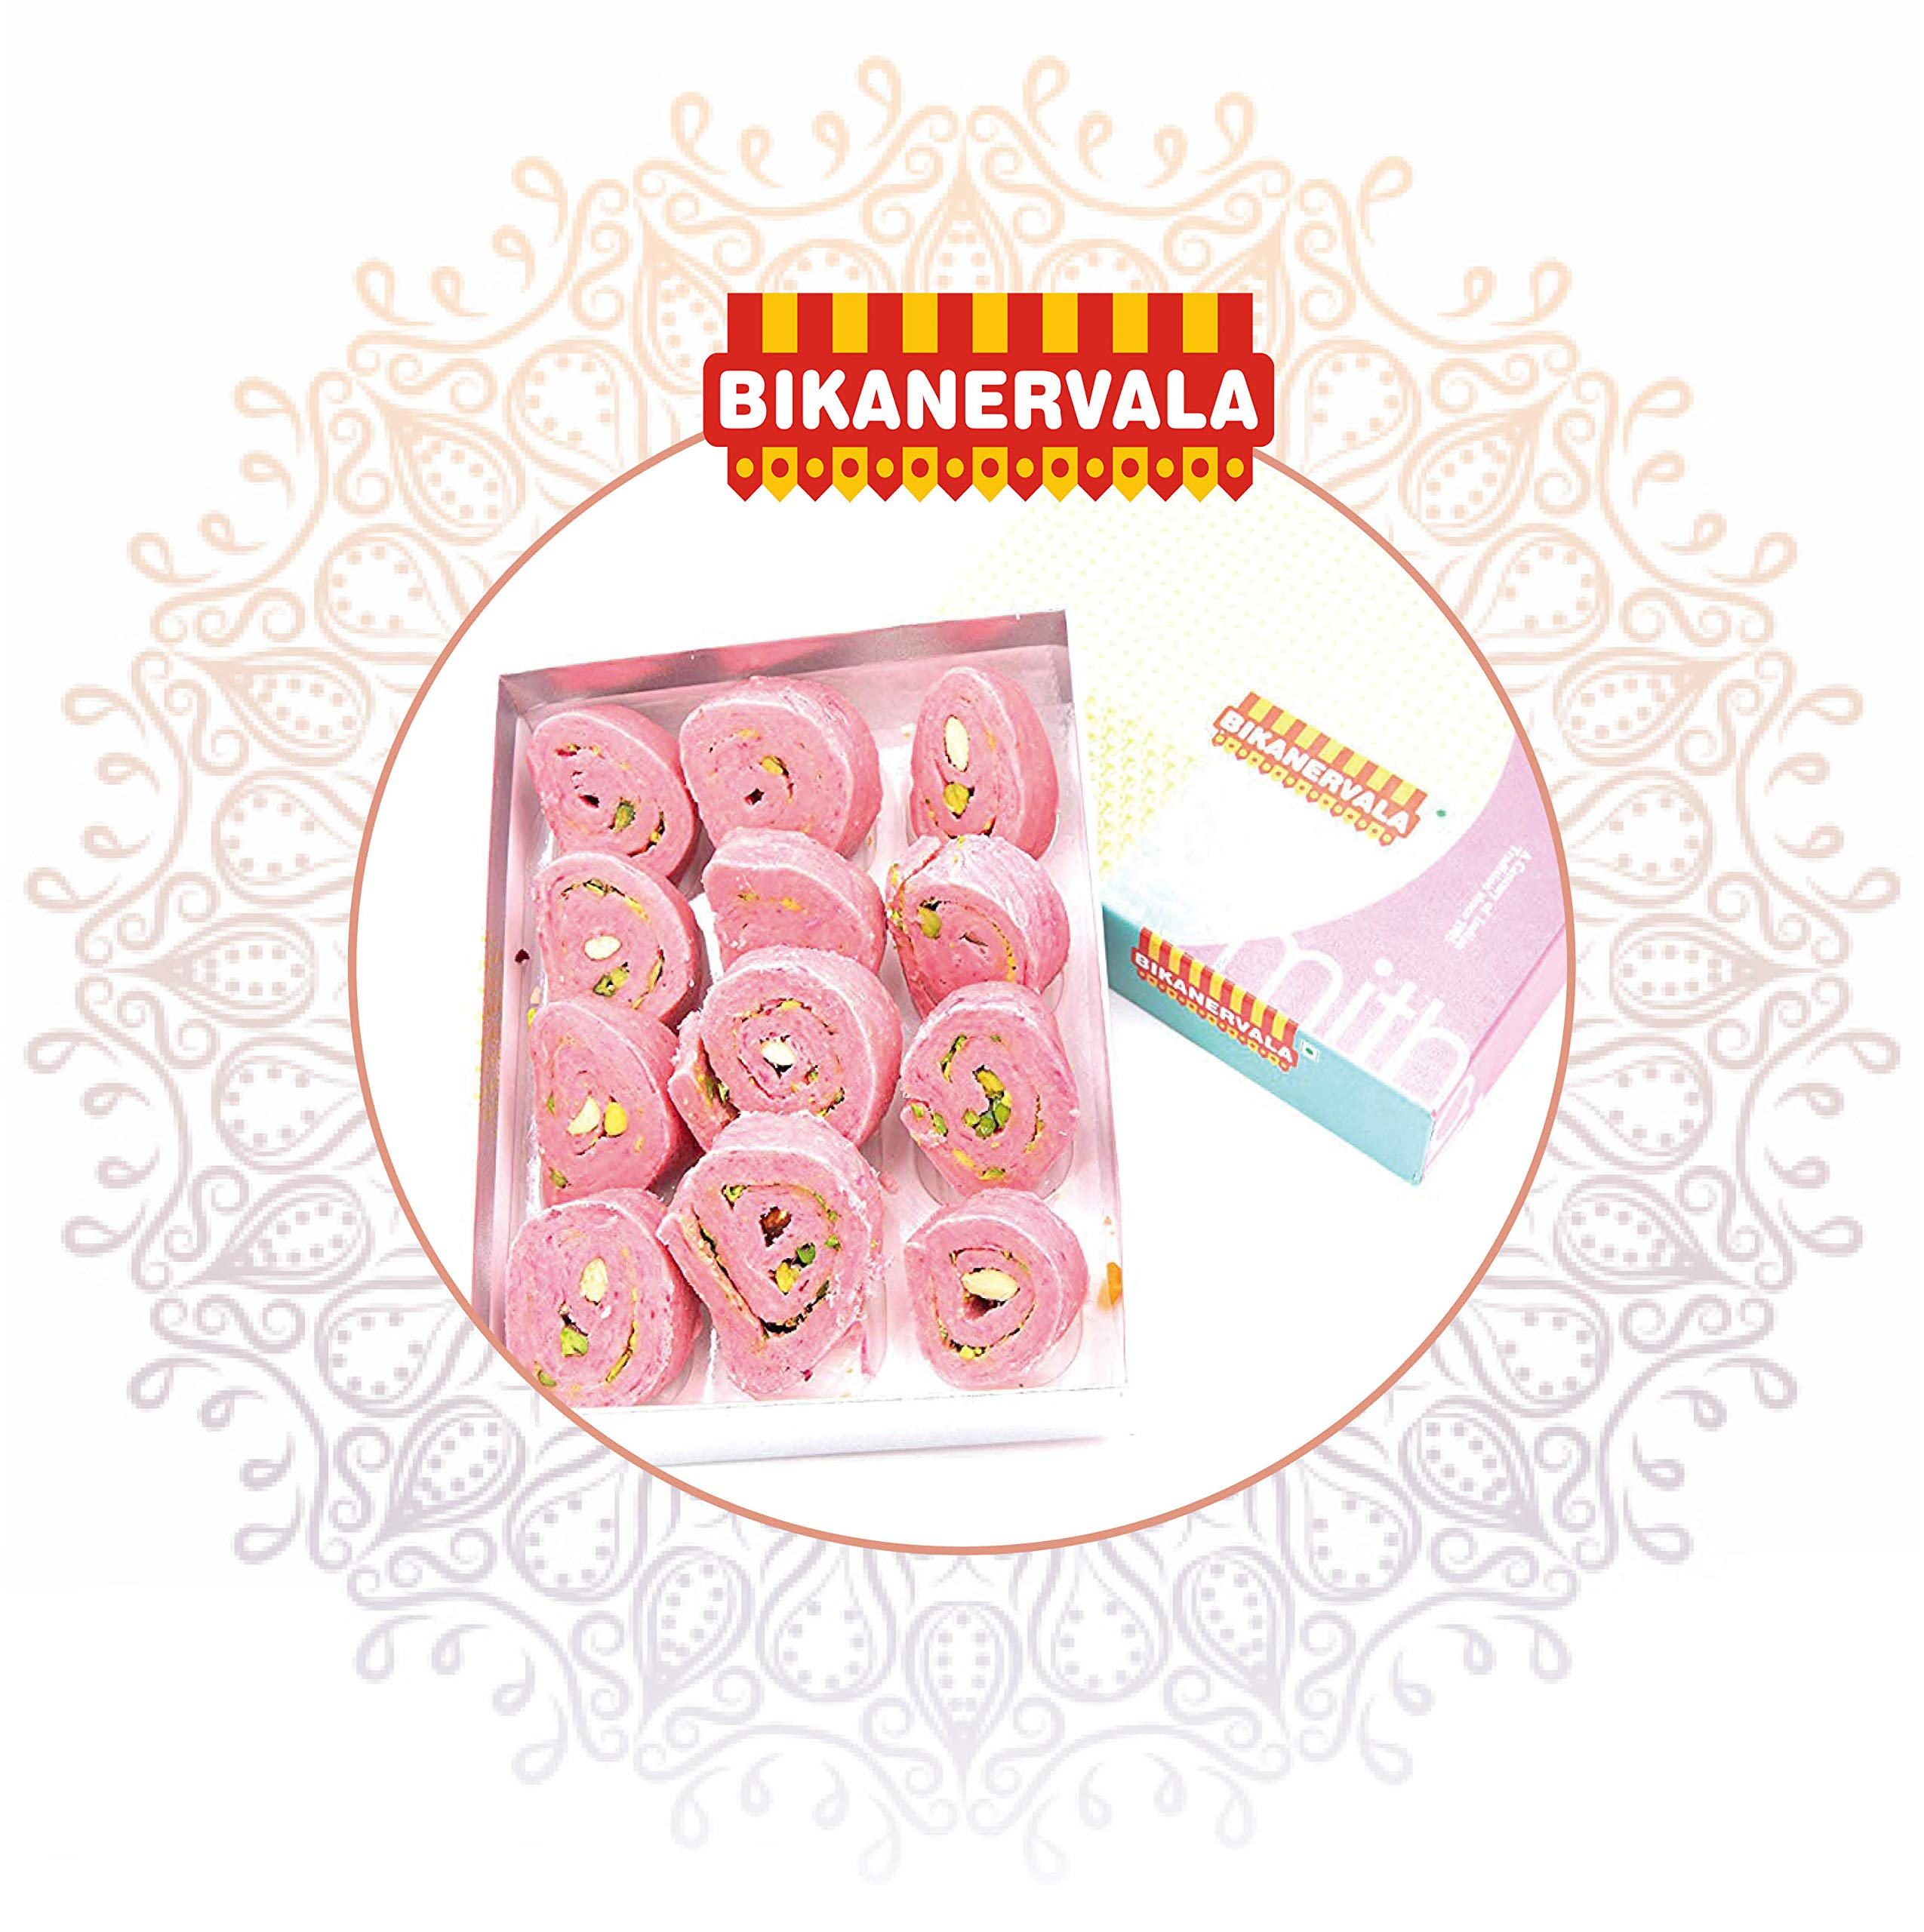 Bikanervala Kaju Rose Cake Indian Ethnic Sweets, Authentic & Natural, 1LB by Bikanervala